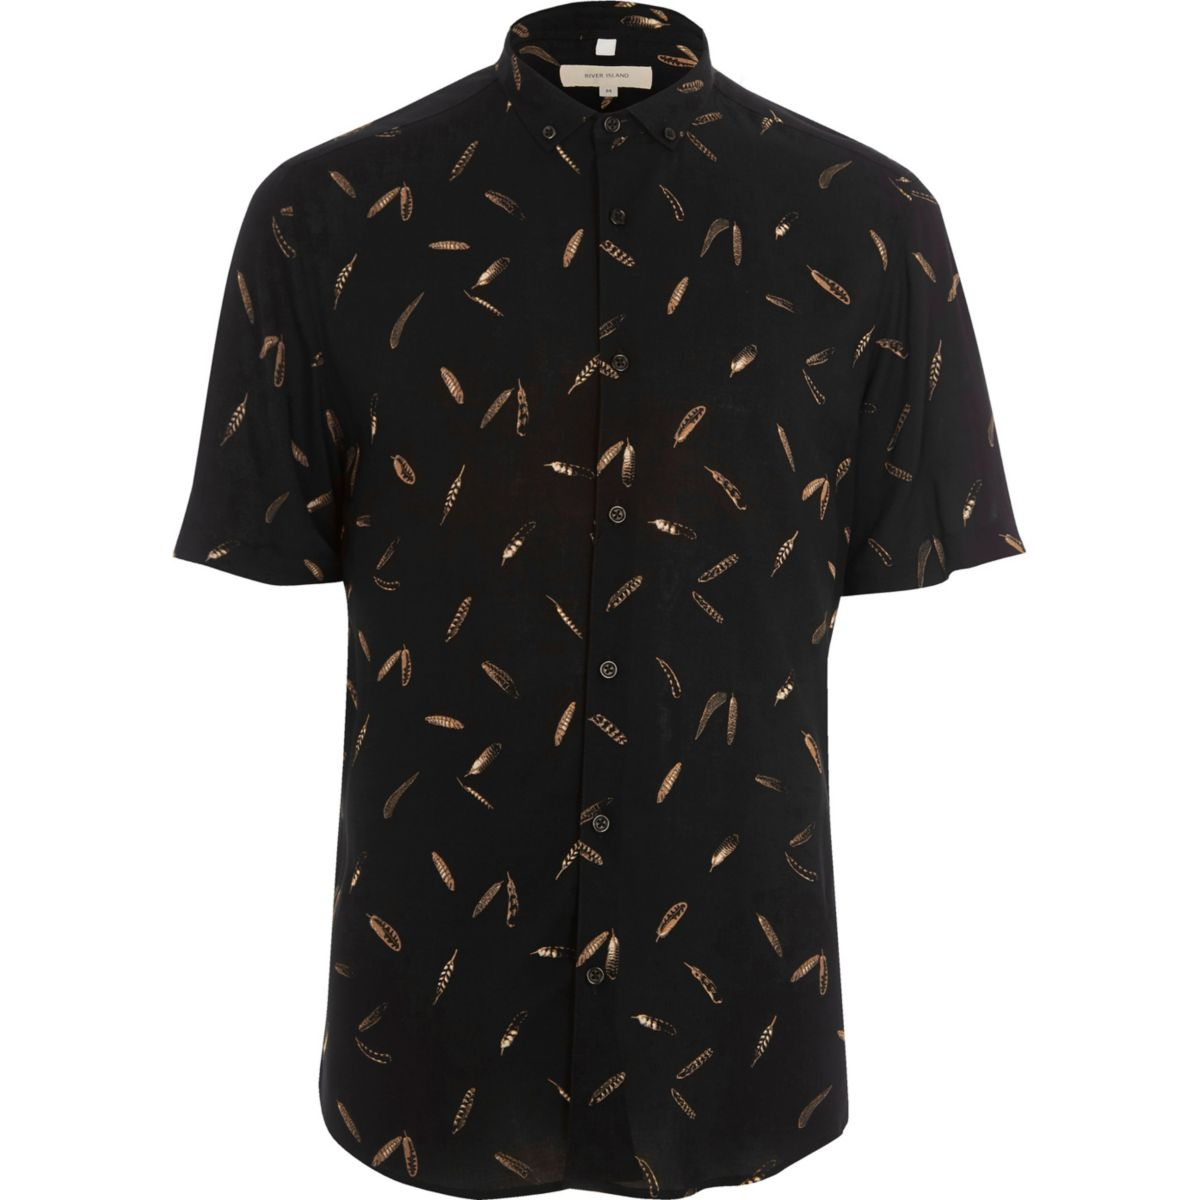 Mens Black peacock short sleeve slim fit shirt River Island Discount Buy Cheap Low Shipping All Size g4by7Uclh